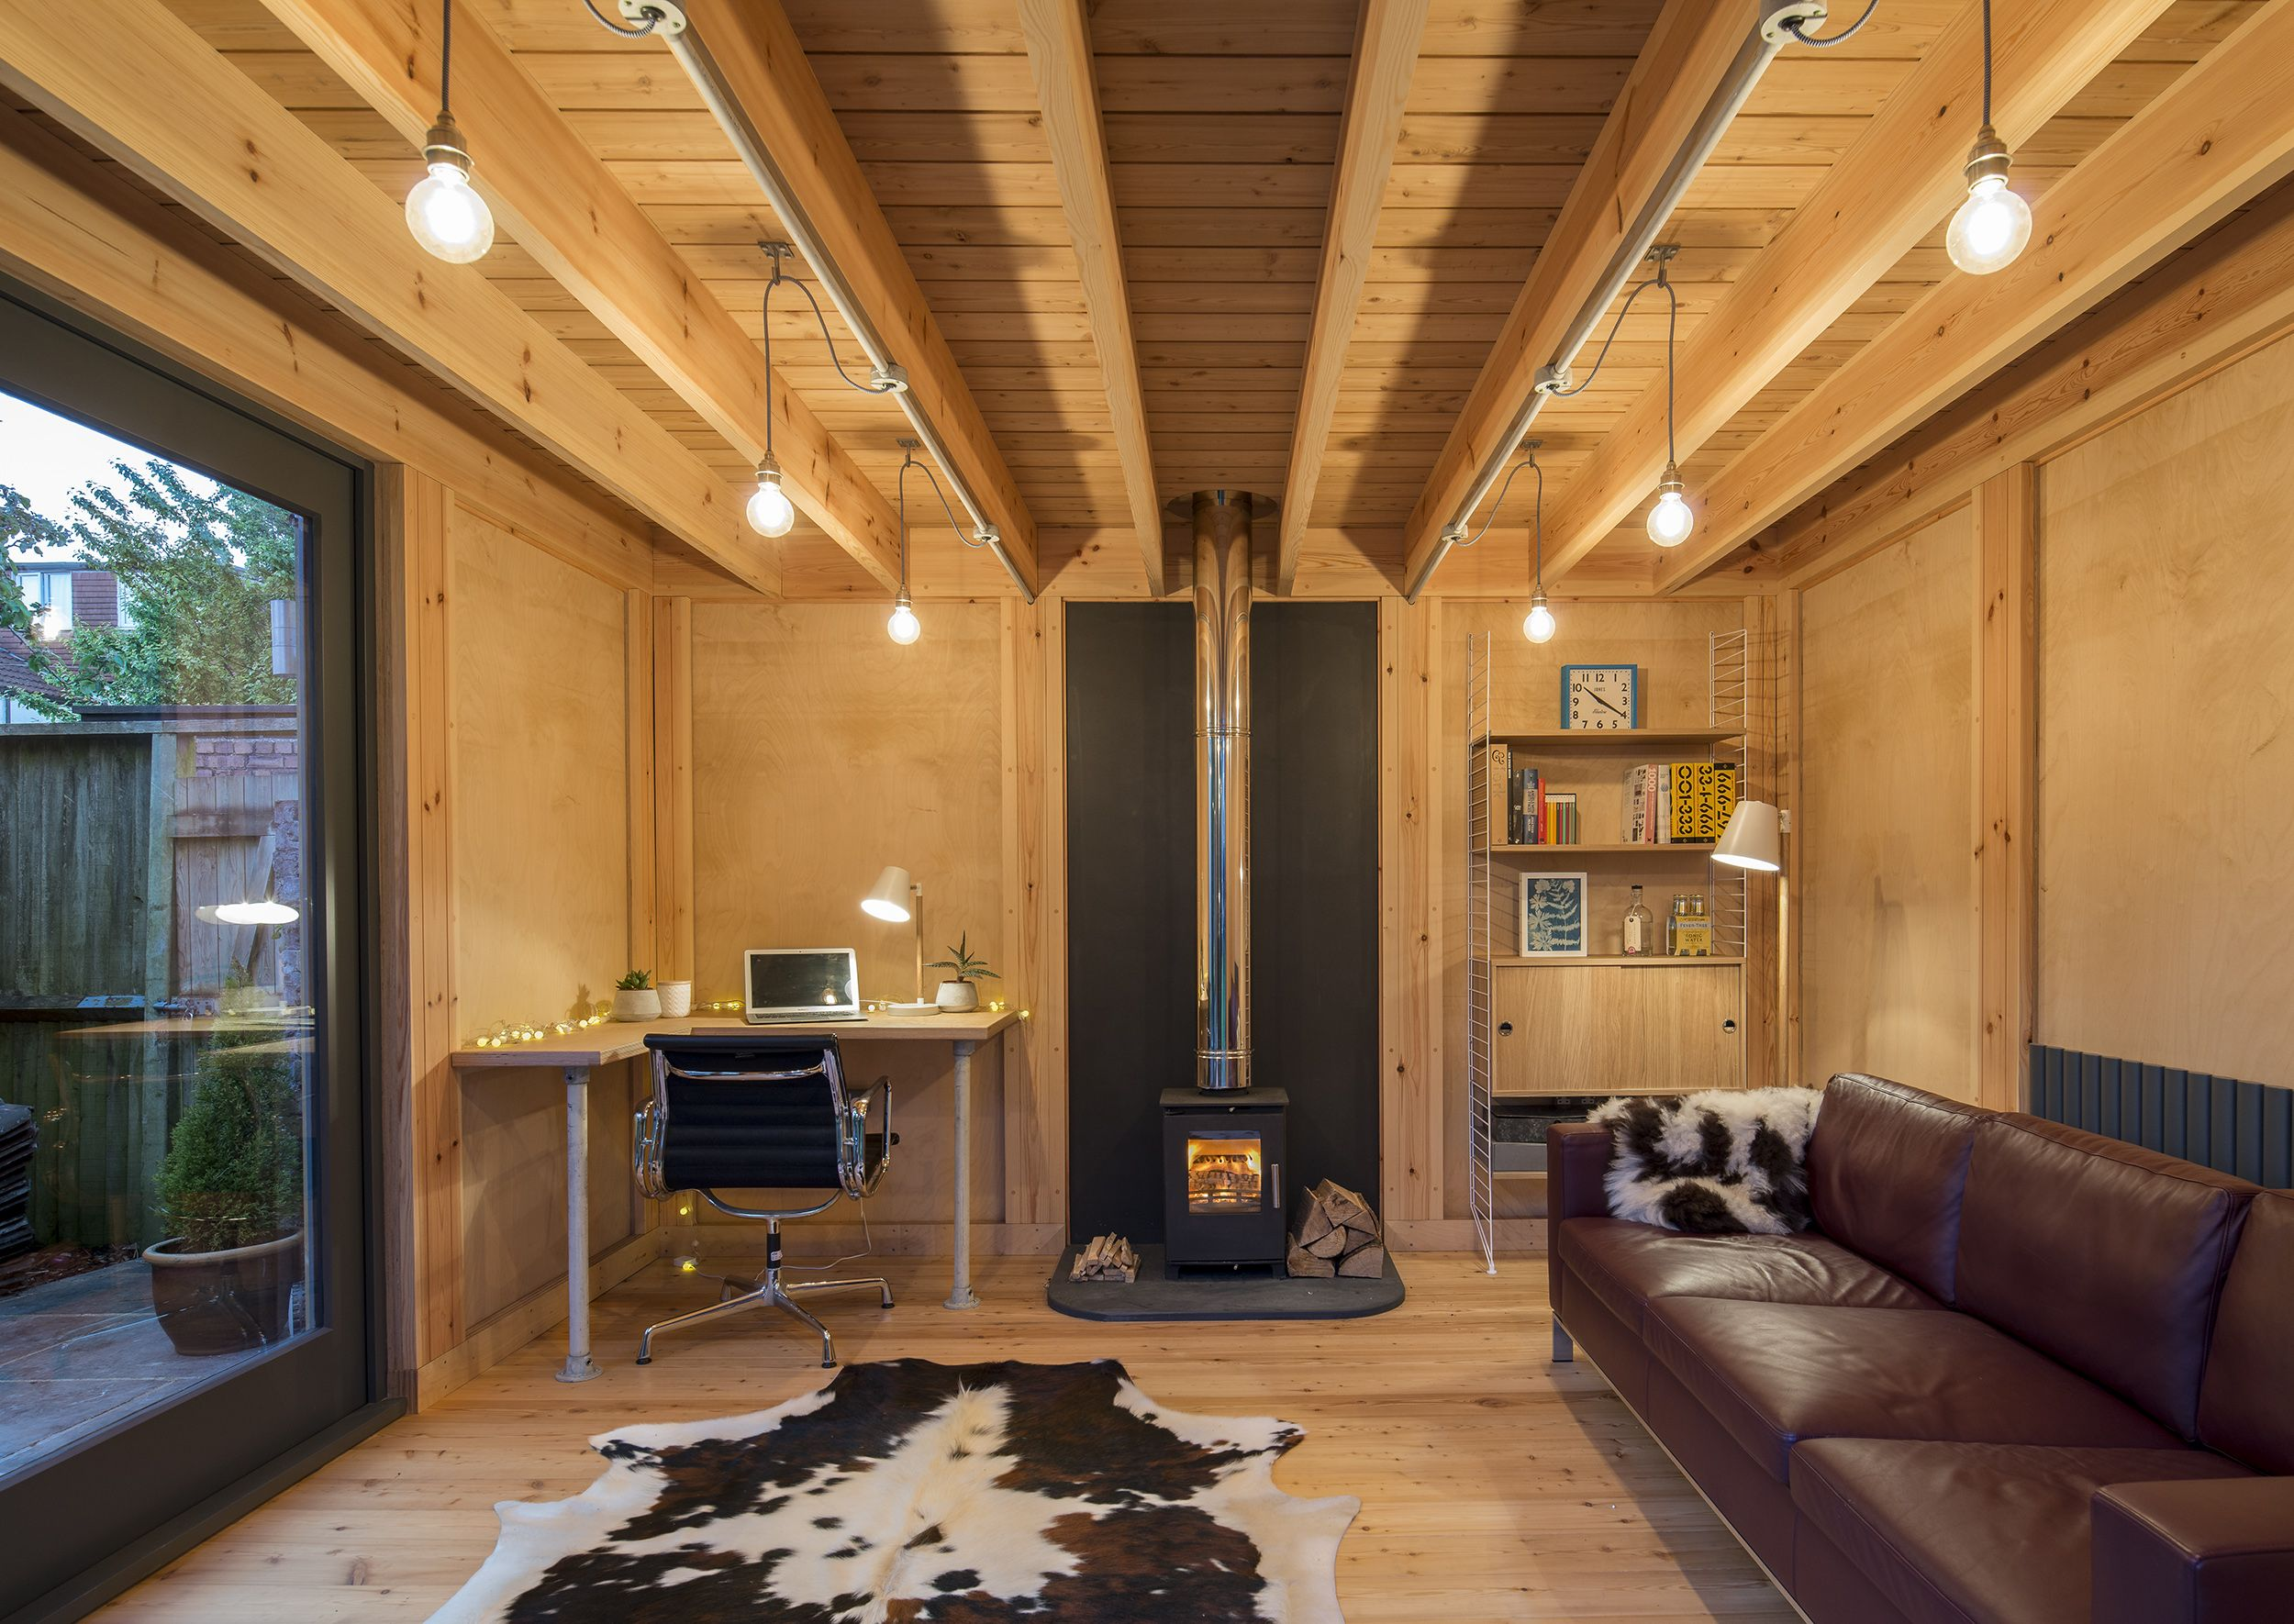 home office cabin. Home Office Cabin, Woodburning Stove And Timber Interior Cabin E